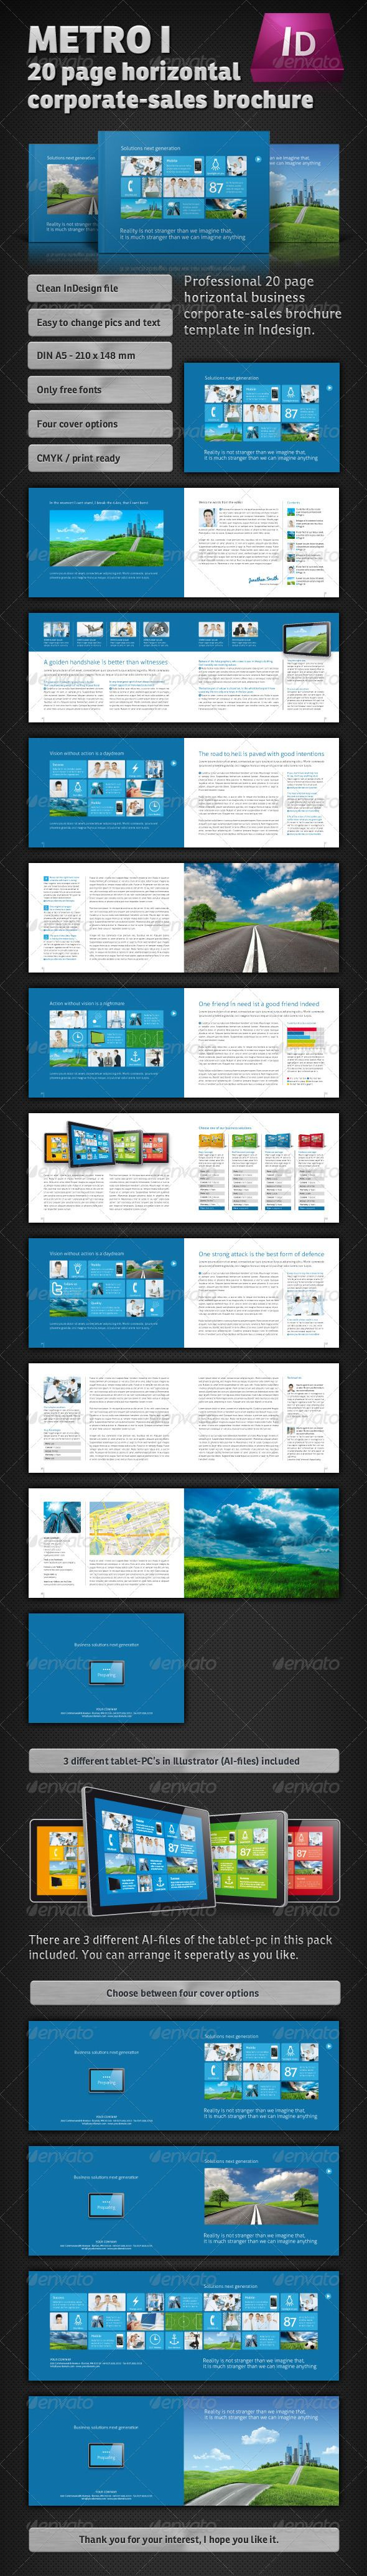 Metro I – 20 Page horizontal Sales Brochure  #GraphicRiver        Metro I – 20 page horizontal sales brochure 	 This is a modern and clean 20 Page DIN A5 (210×148 mm) landscape format brochure. It is much cheaper to produce than a DIN A4 brochure, but it has nearly the same attention. The brochure is focused by design on CI, the main usage is for sale. It is designed very clean to show a big potential of competence. It is without any crazy designerstuff to enlarge the seriosity. There are no…